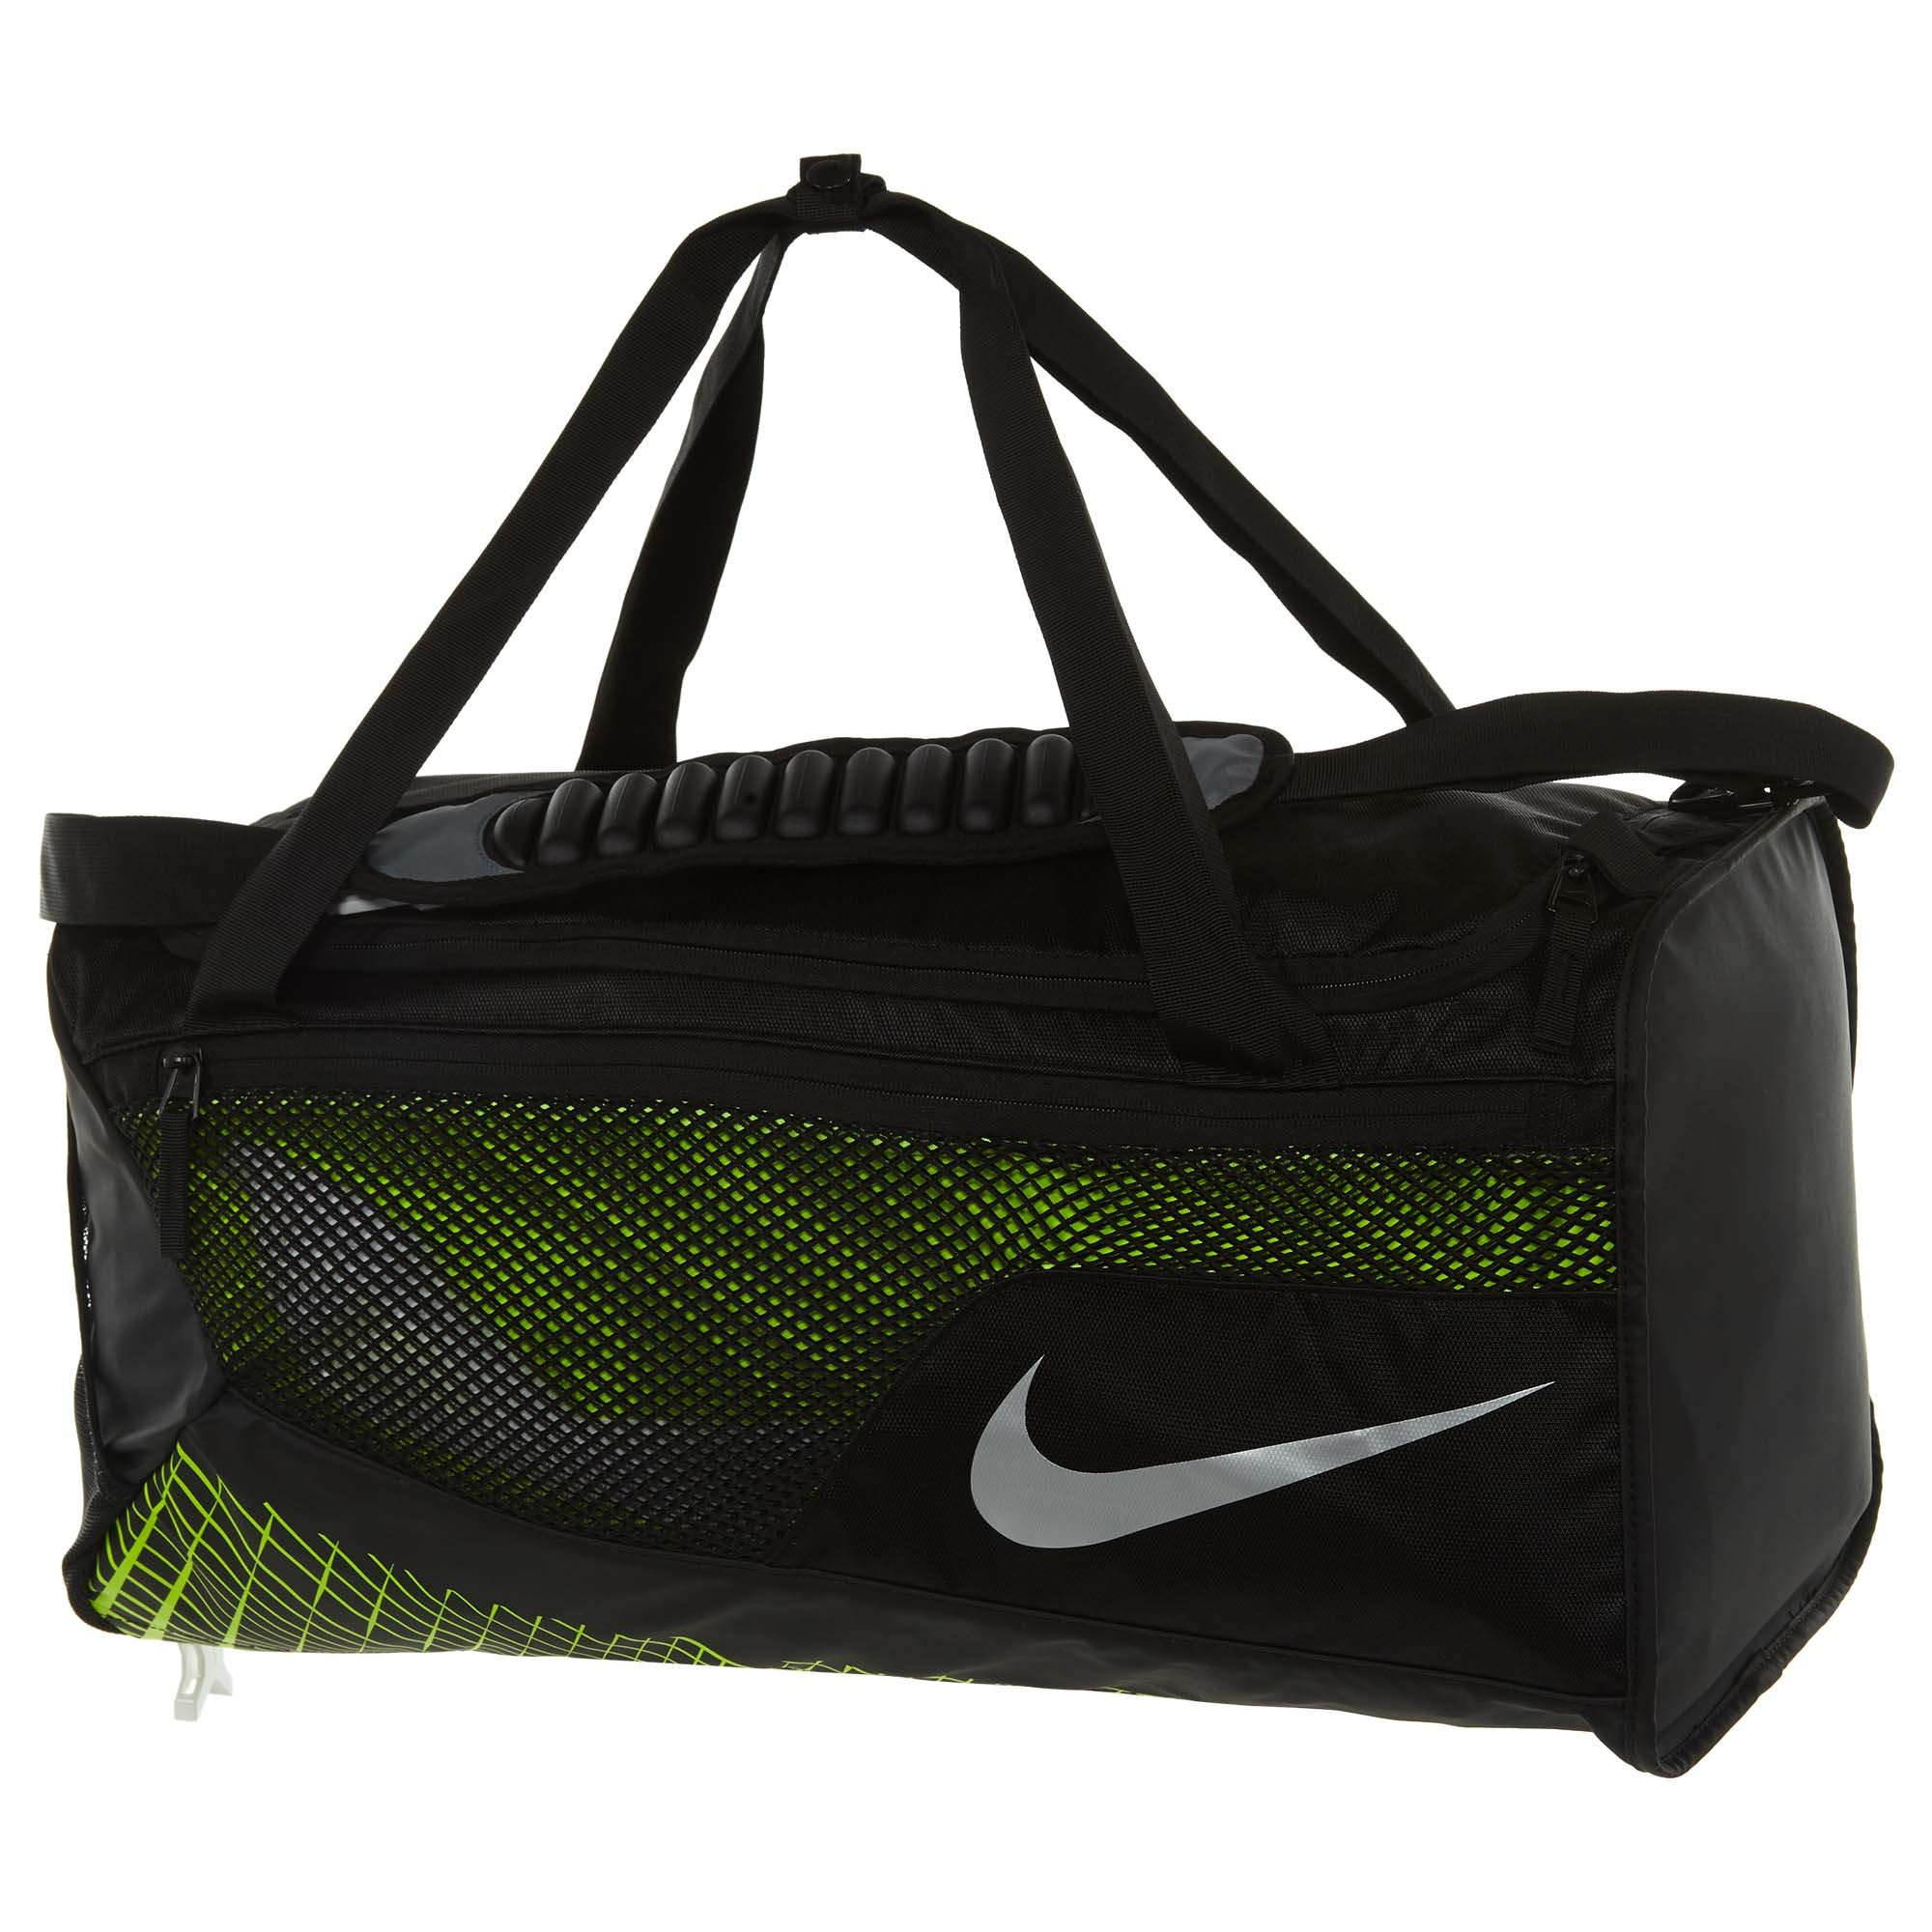 a828e0dfe2 Galleon - Nike Mens Vapor Max Air Medium Training Duffel Bag BA5475-010 -  Black Volt